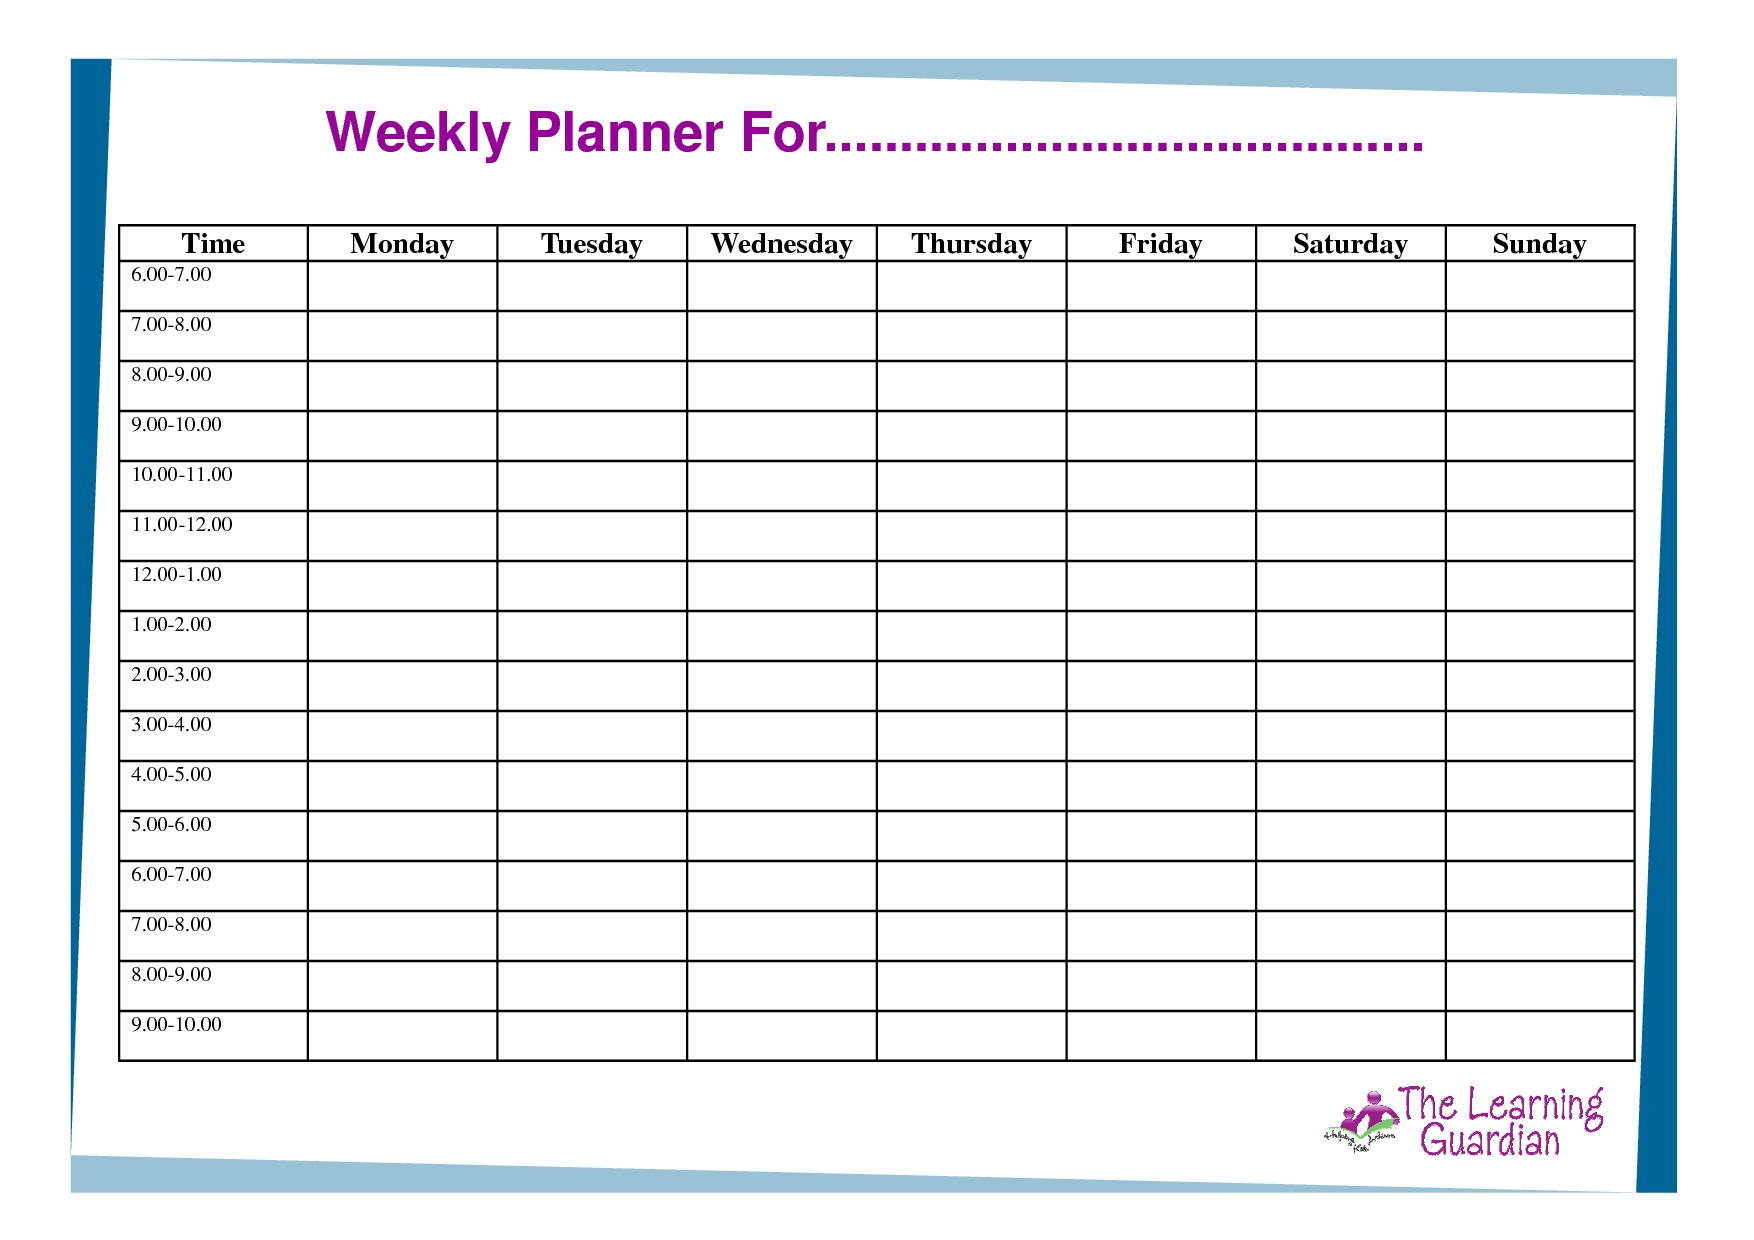 Weekly Calendar Template Monday To Friday | Calendar Monday Friday Calendar Printable